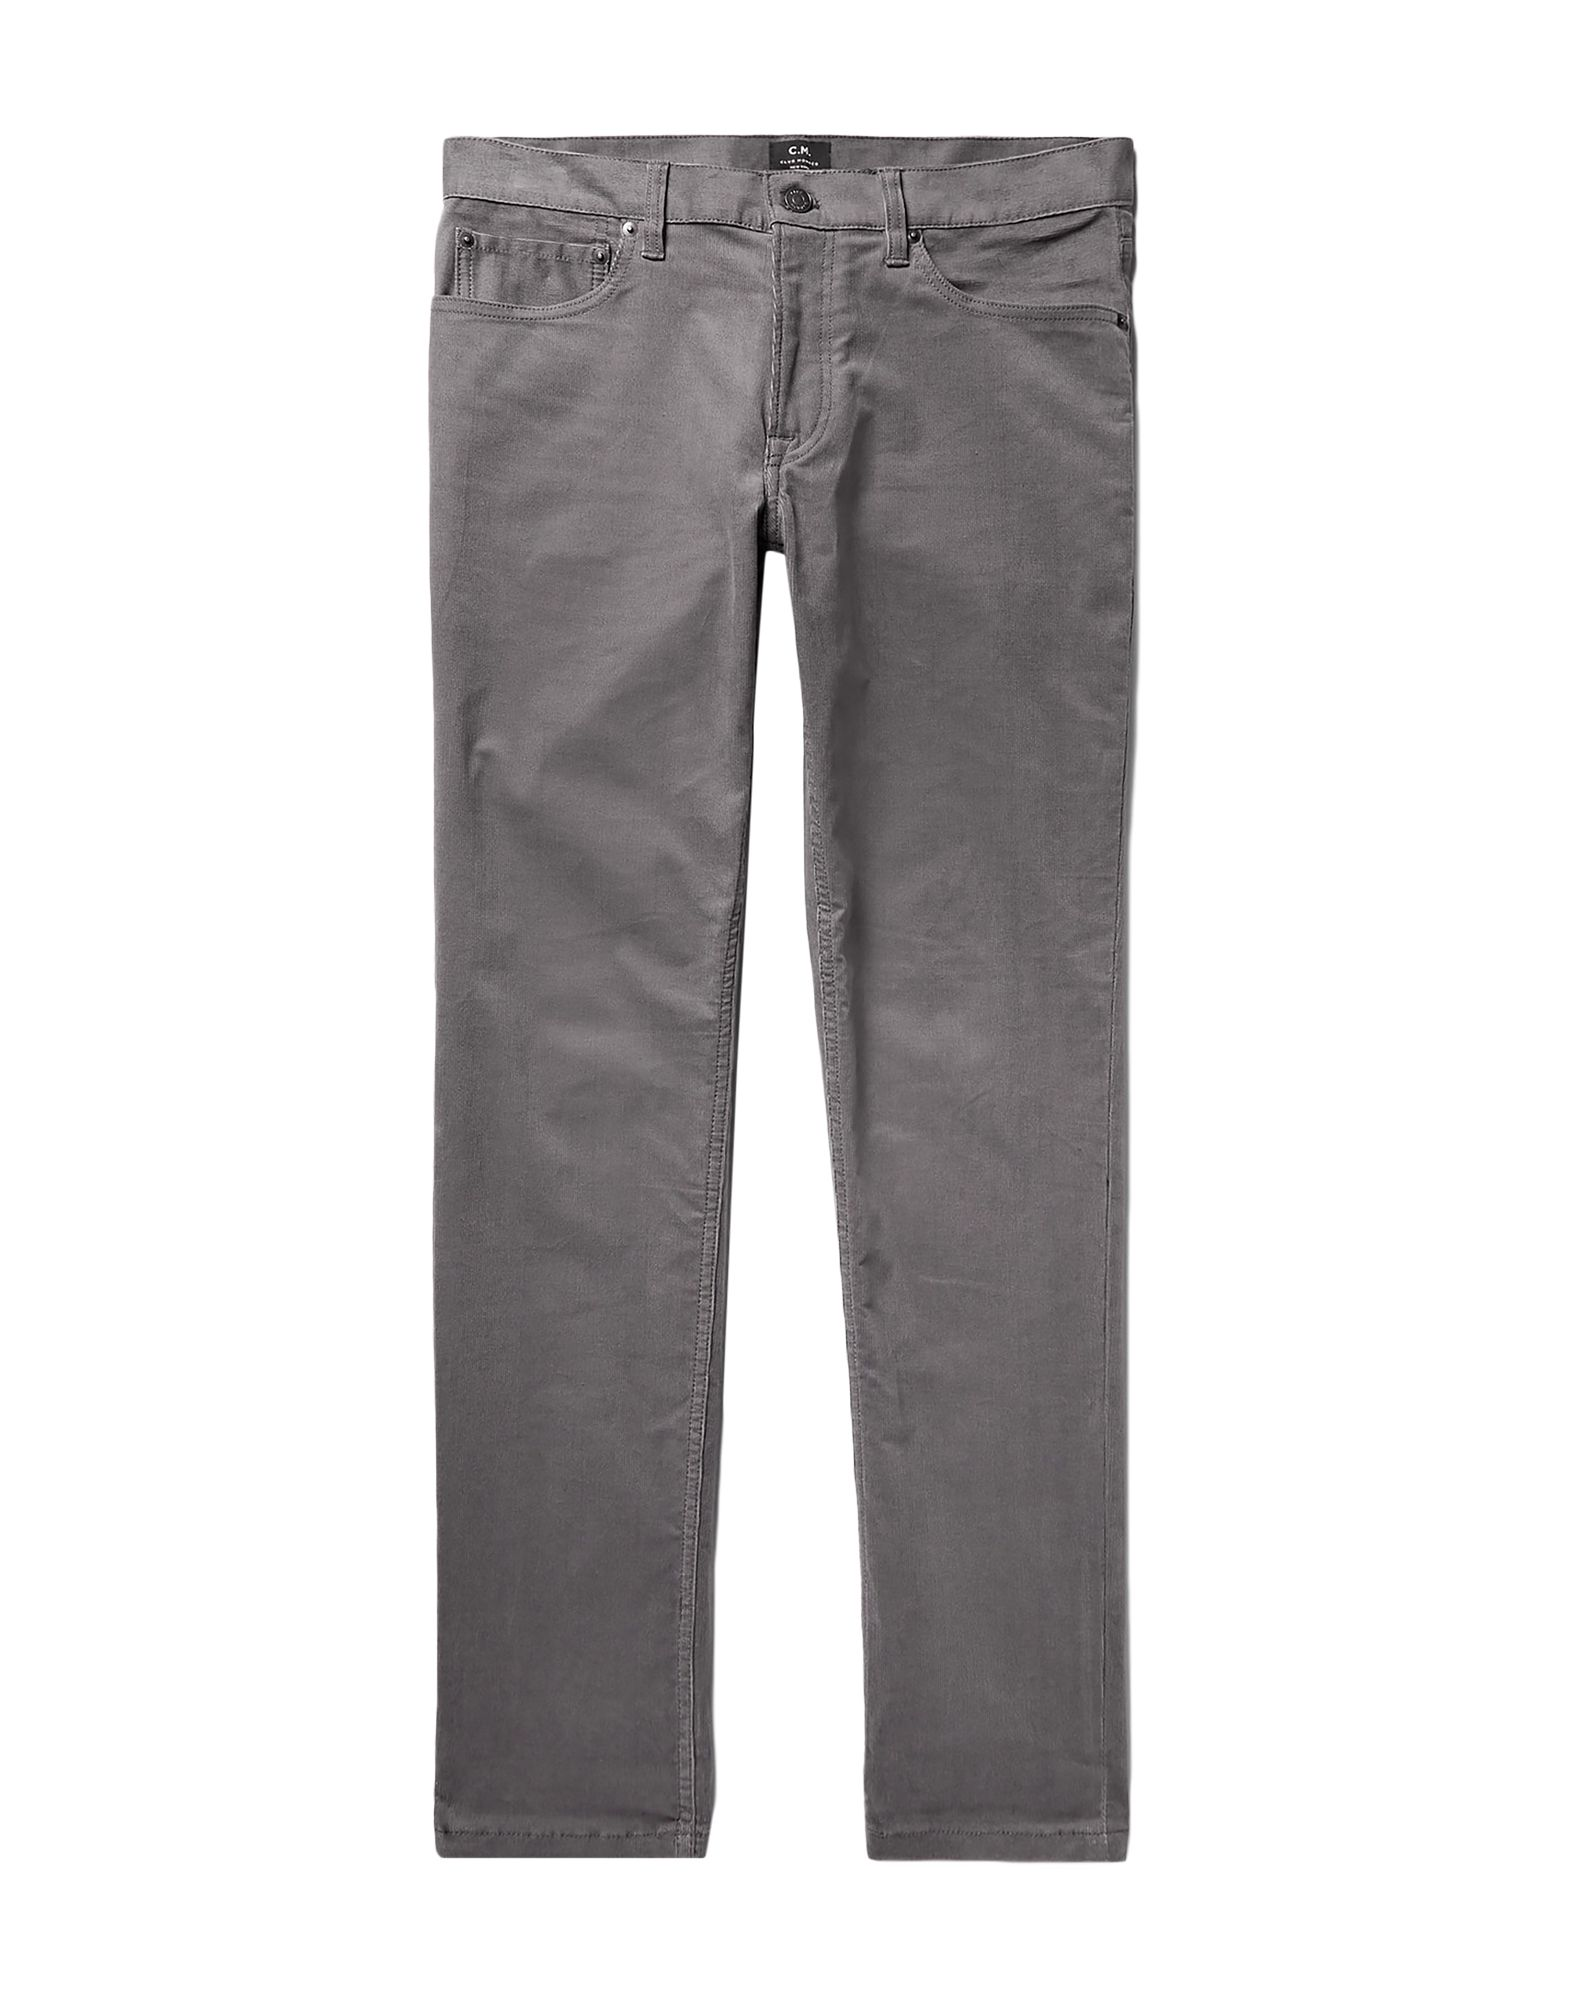 CLUB MONACO Casual pants. velvet, ribbed, studs, logo, basic solid color, mid rise, regular fit, tapered leg, button, zip, multipockets, stretch. 98% Cotton, 2% Elastane